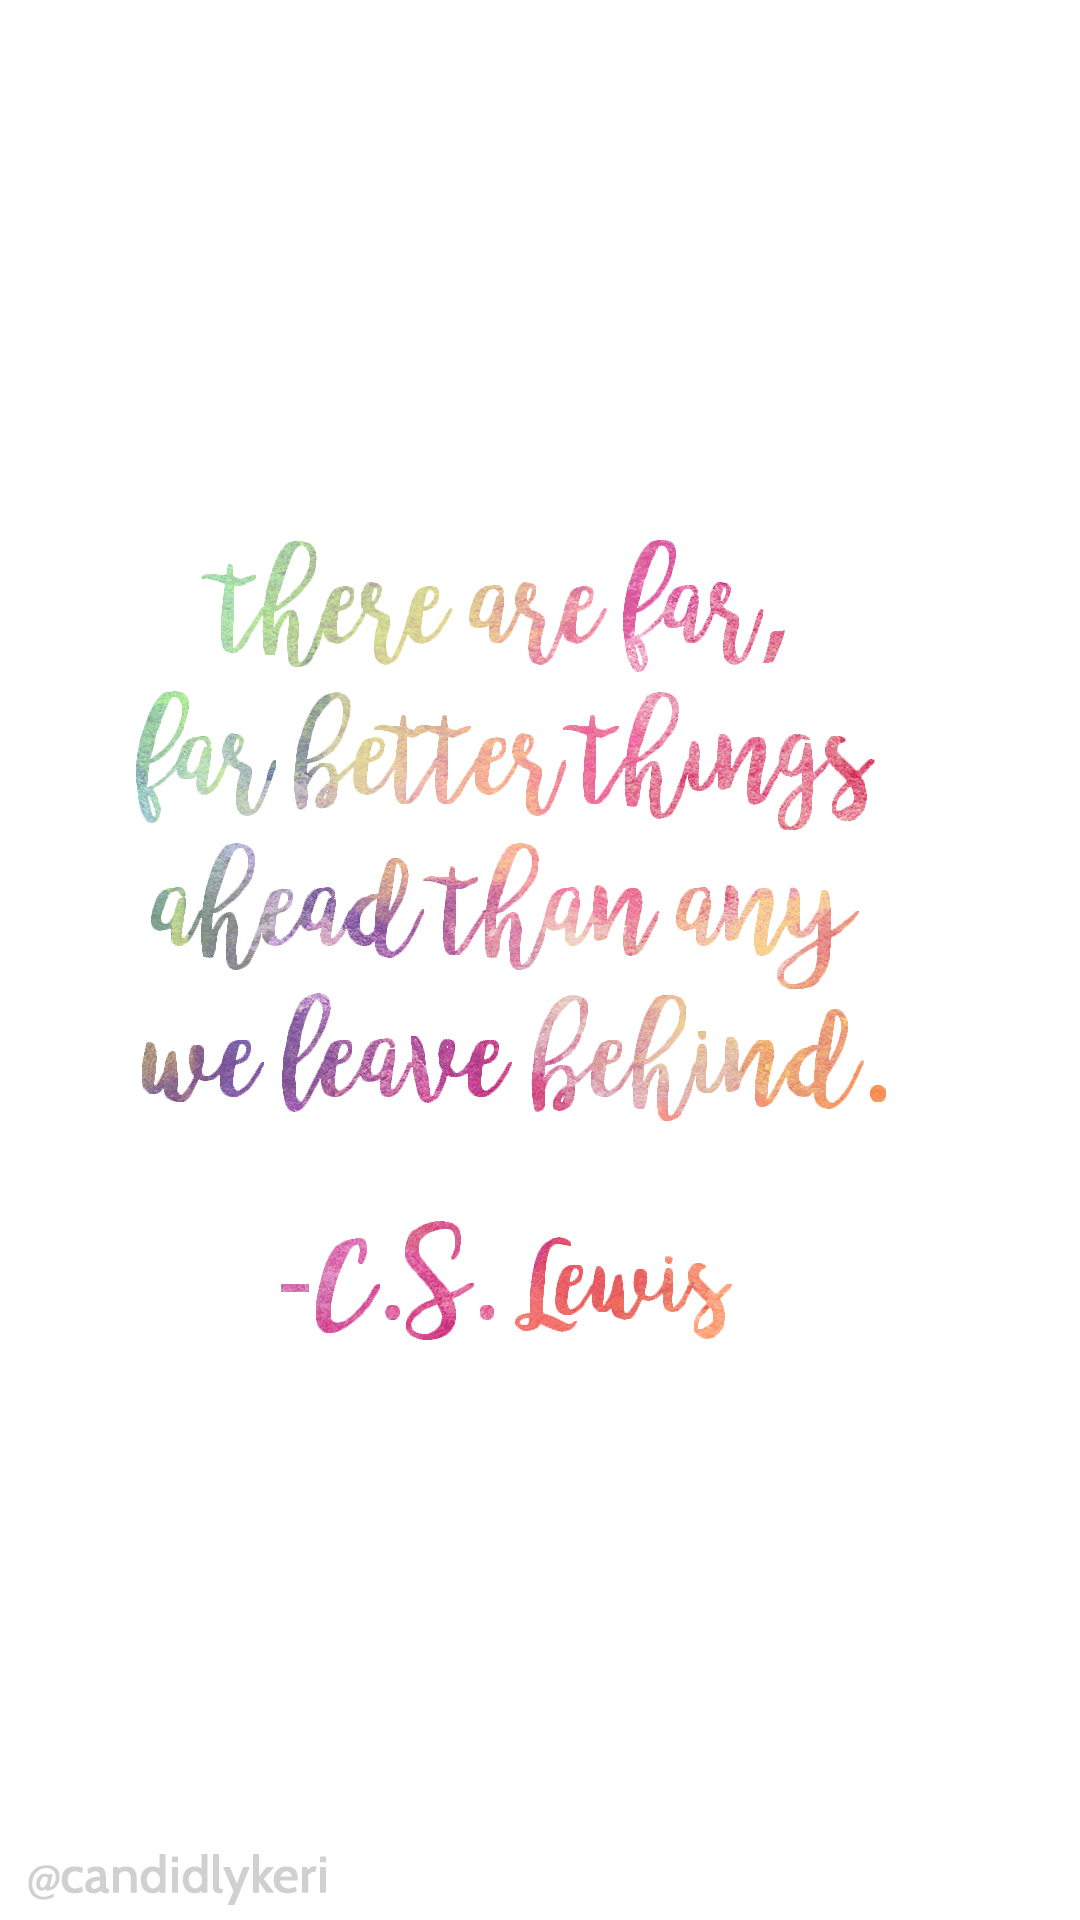 Colorful-watercolor-quote-background-CS-Lewis-and-white-iphone-andriod-desktop-free-download-wallpaper-wp424643